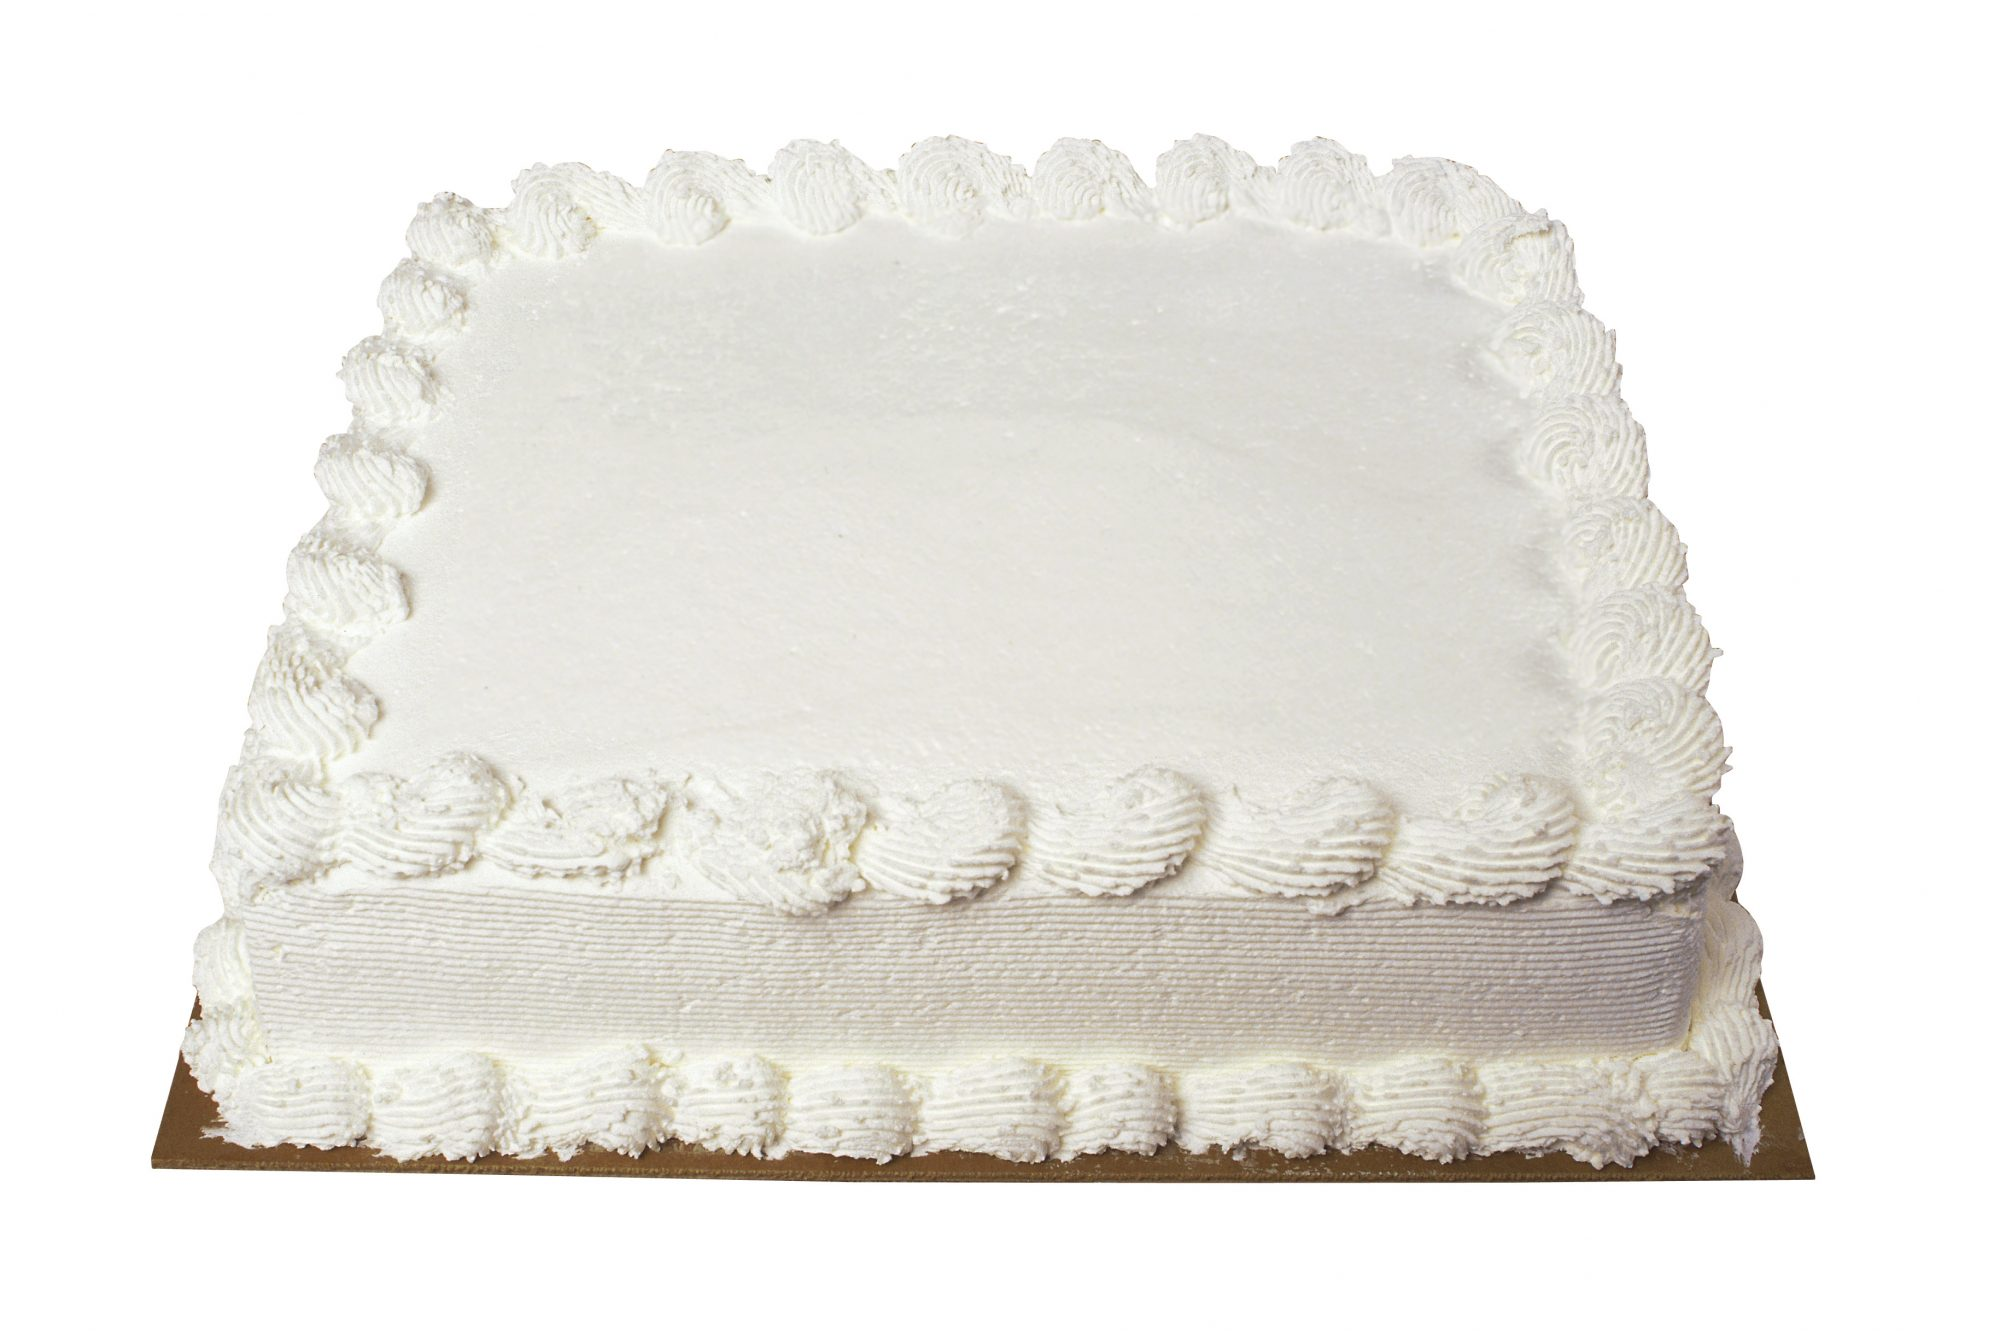 Why I Said 'Yes' to the Grocery Store Sheet Cake for My Wedding